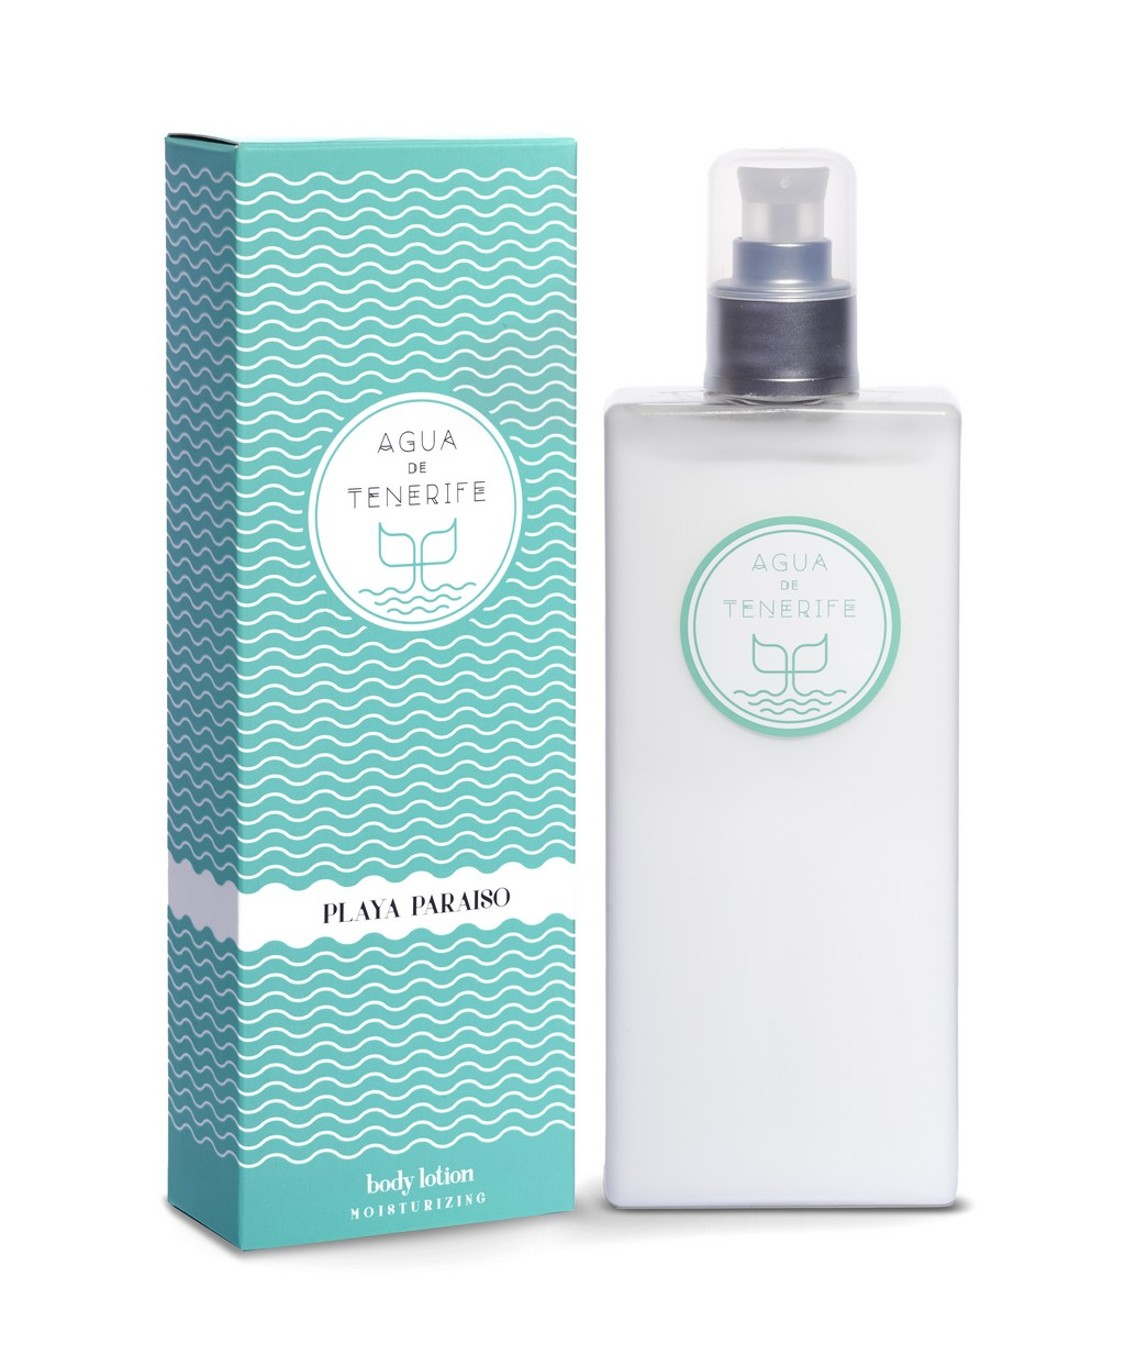 shop Agua de Tenerife  LAS FRAGANCIAS DE LA ISLA: Playa Paraiso Body Lotion 250 ml.